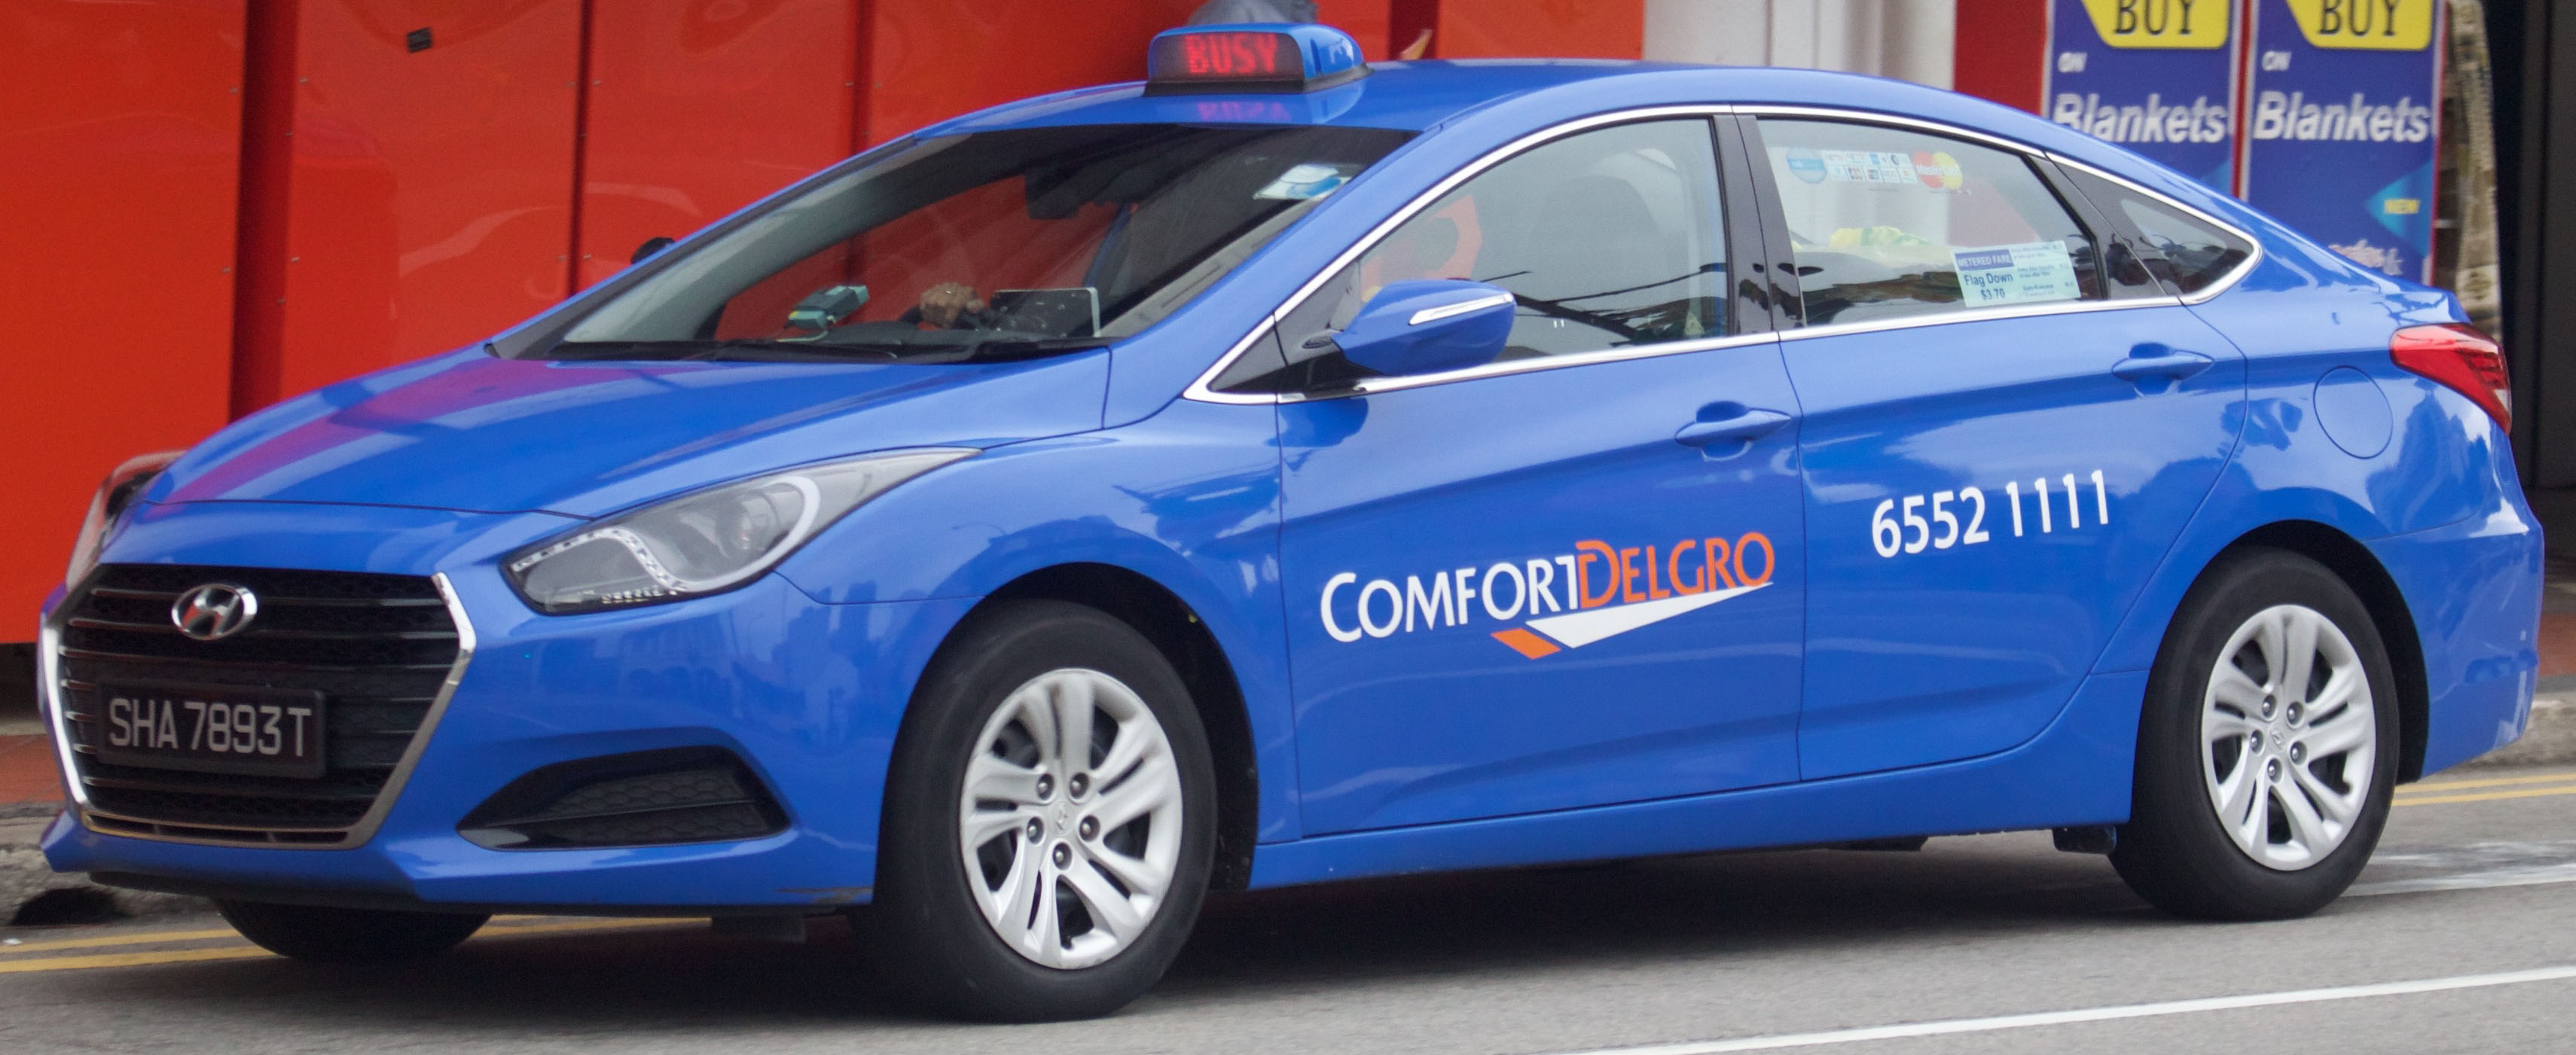 ComfortDelGro had said in December 2017 it would buy a 51 per cent stake in a unit of Uber